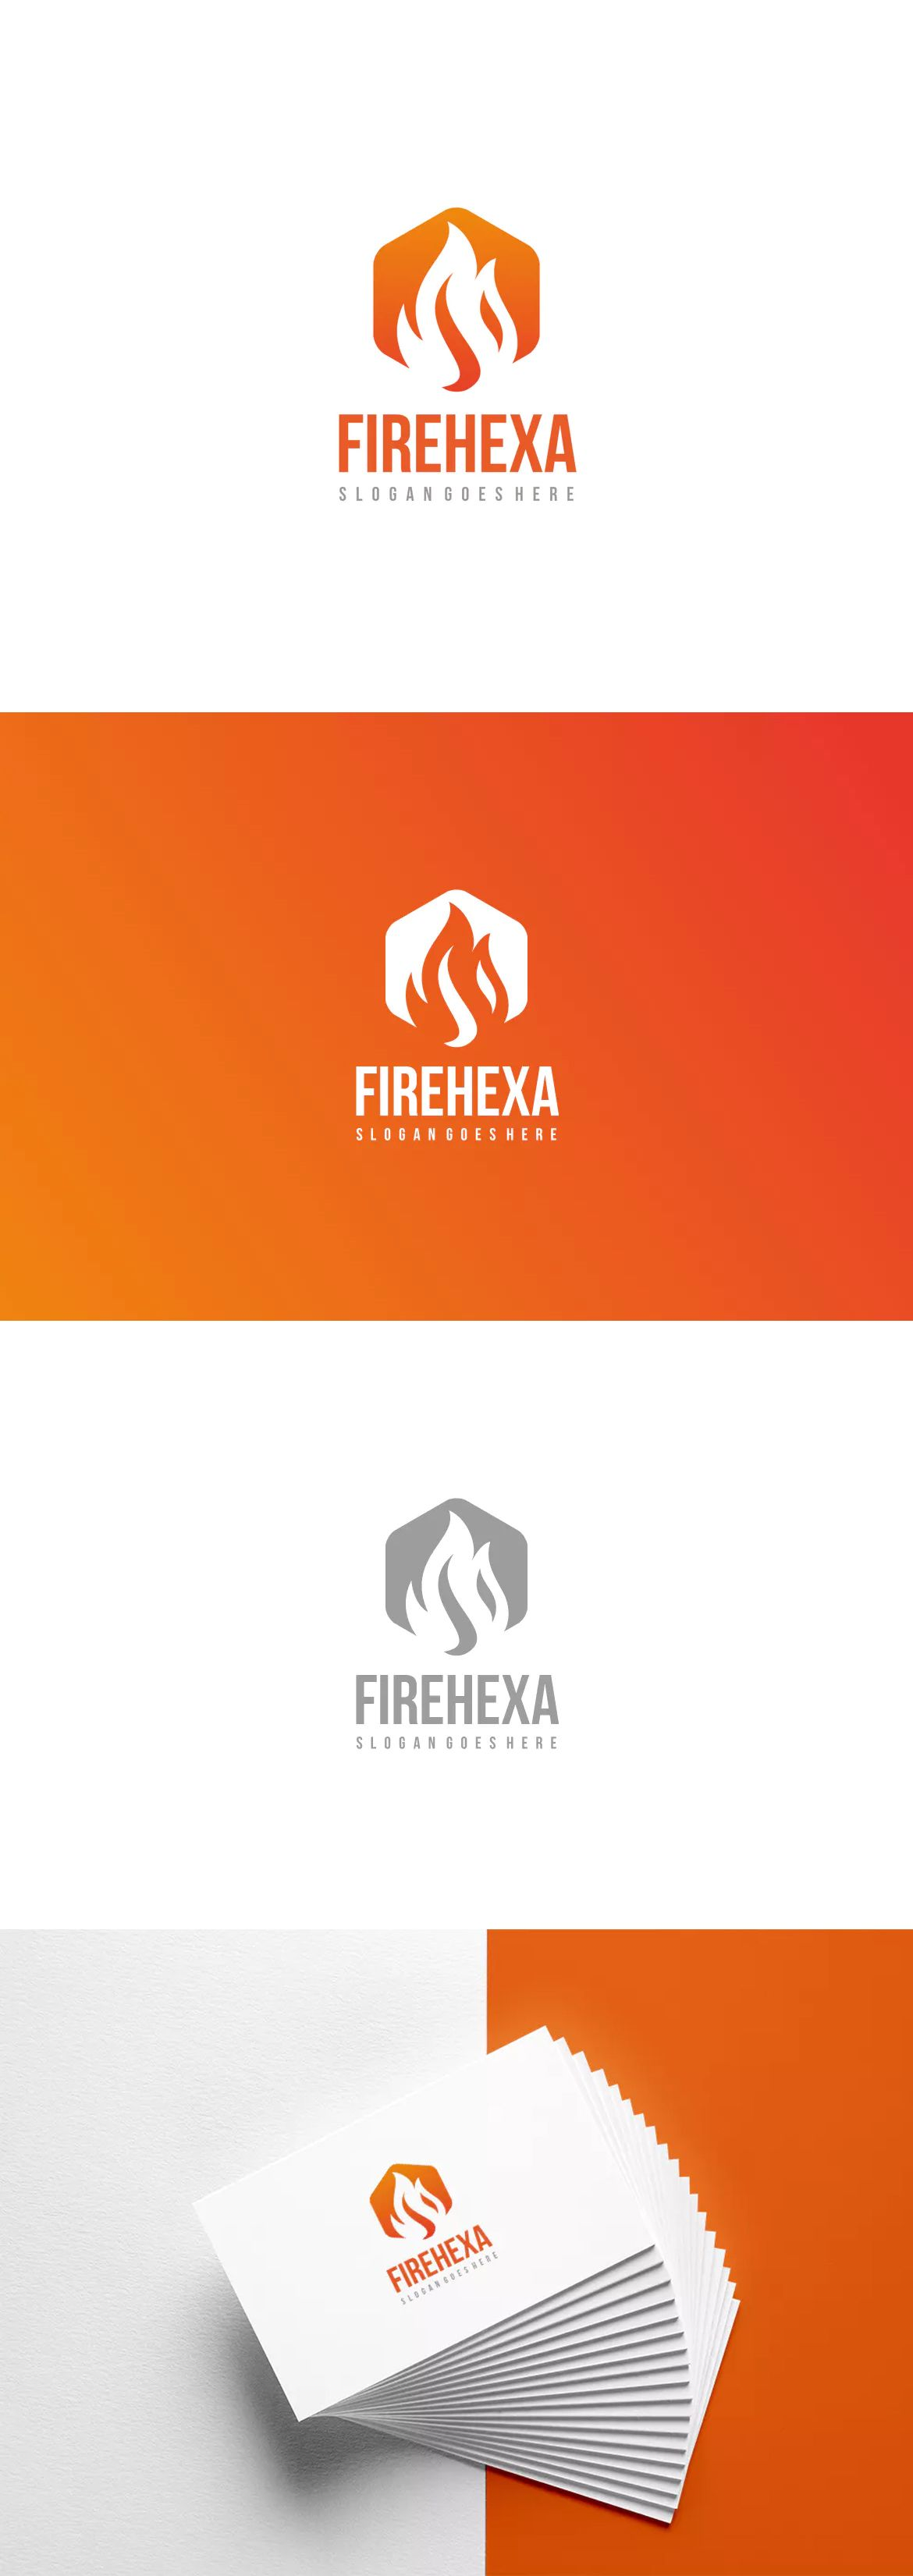 Fire Hexagon Logo Template AI, EPS. Download (With images